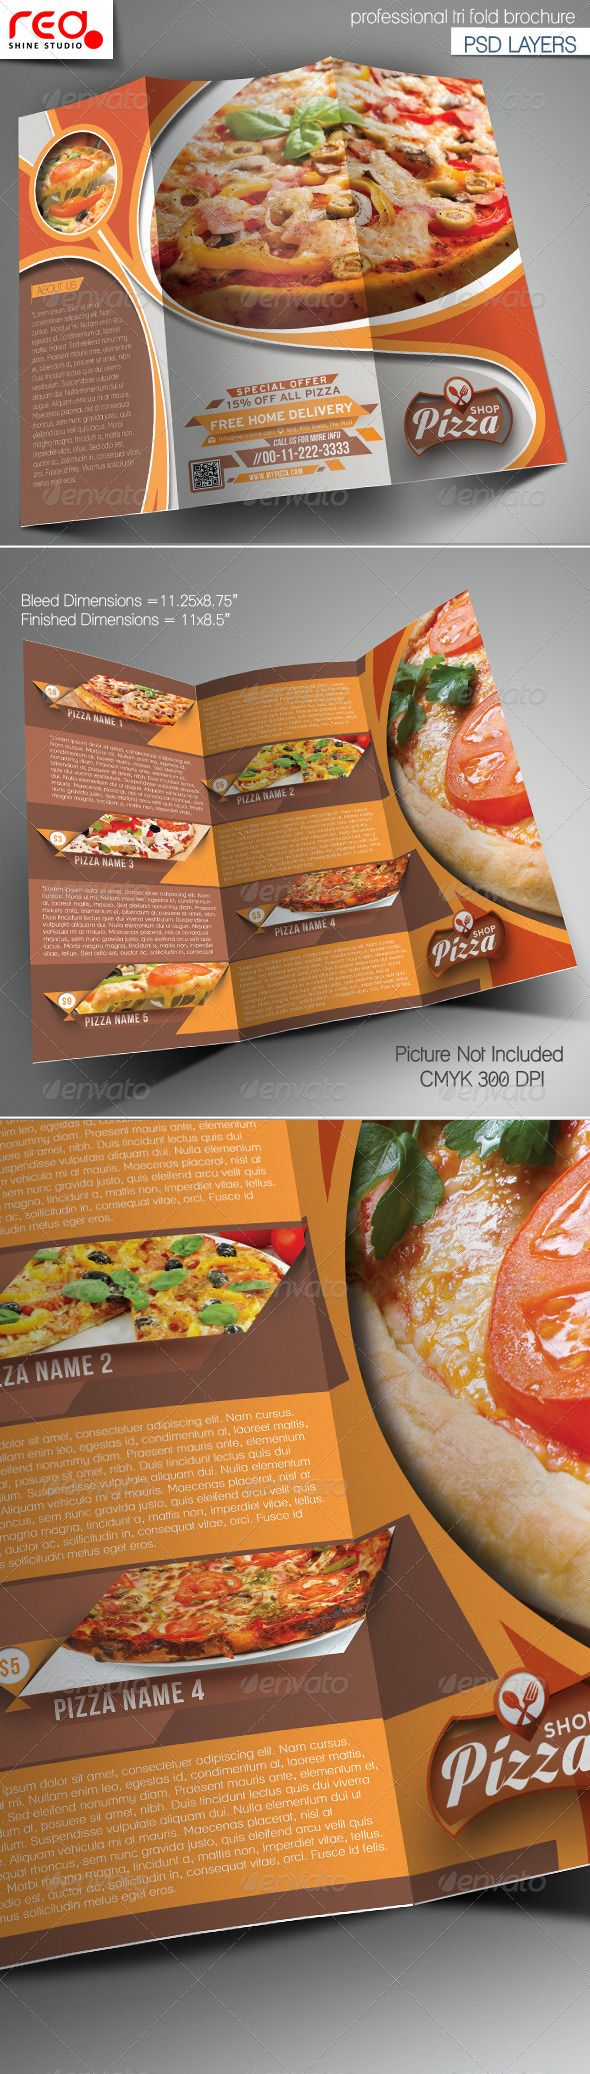 sandwich shop menu template - 17 best ideas about pizza menu design on pinterest pizza